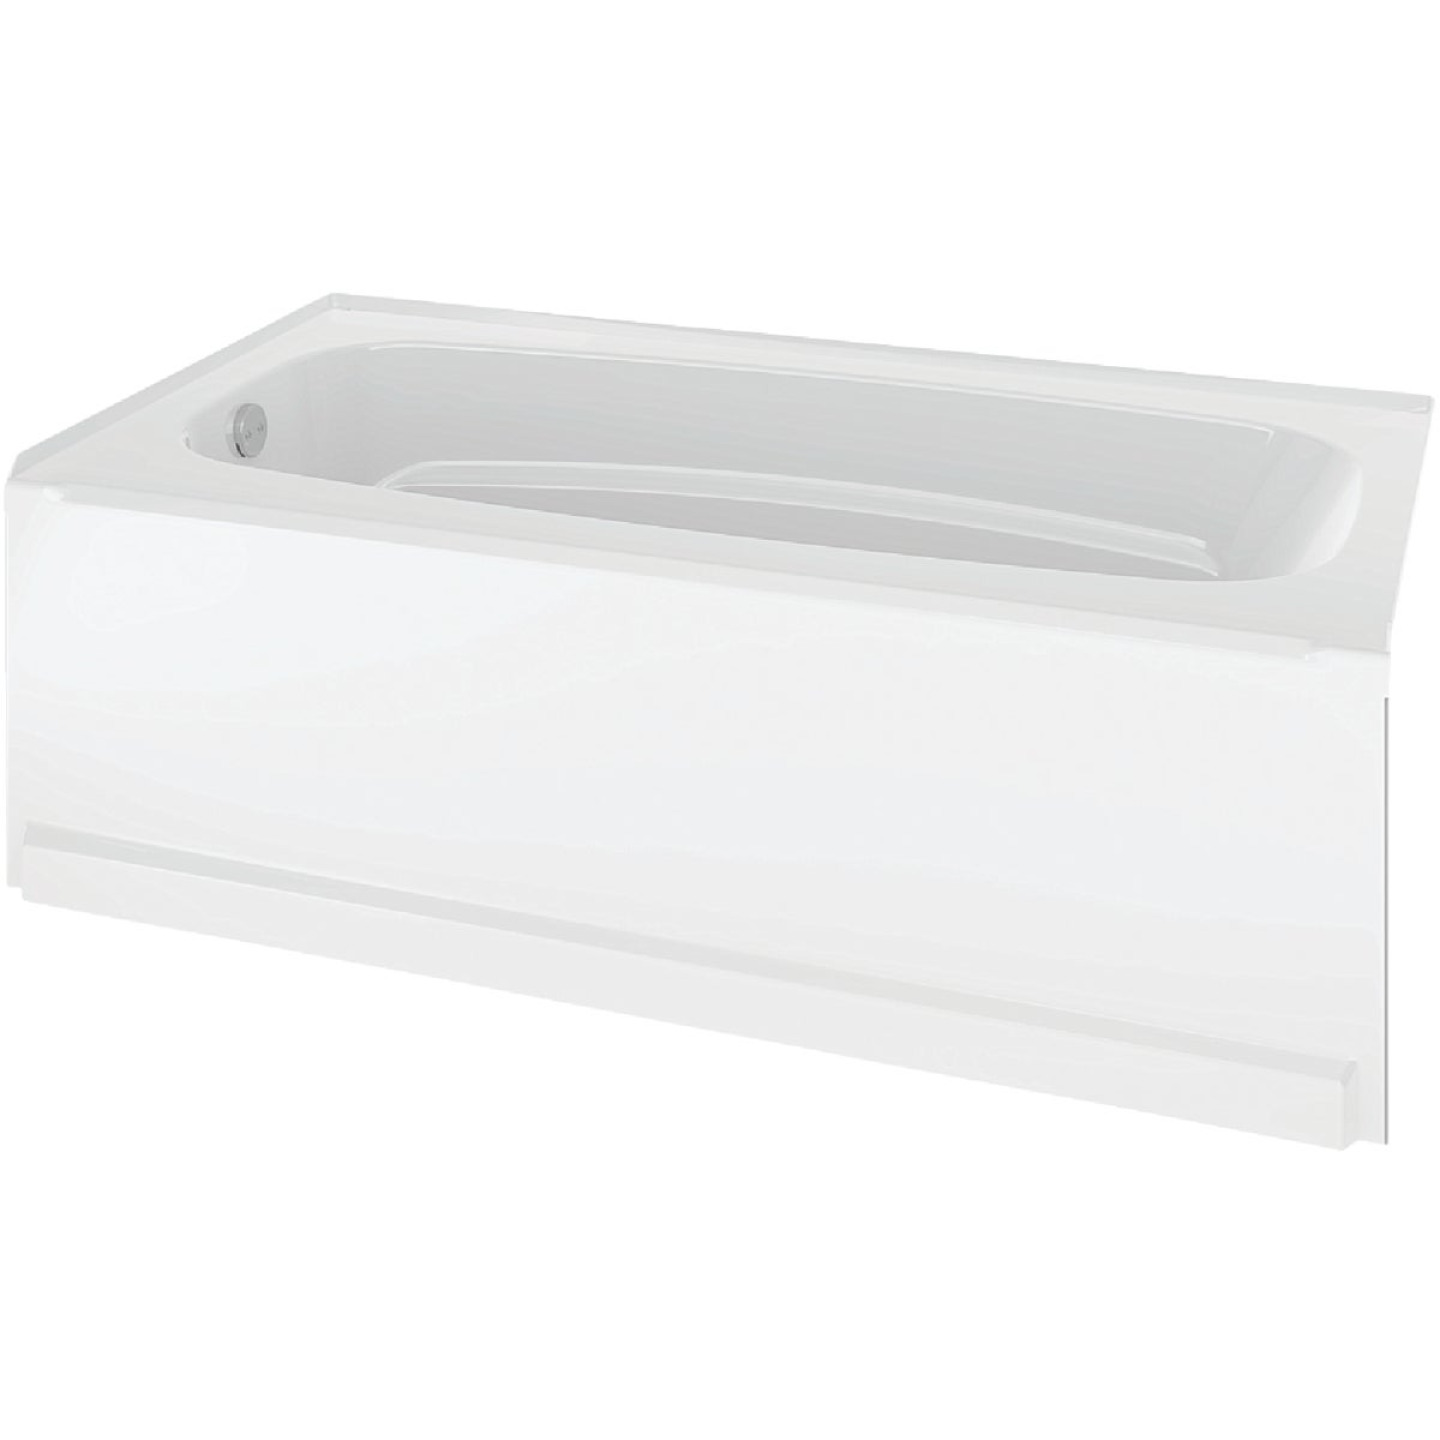 Delta Classic 400 60 In. L x 33 In. W x 18 In. D Left Drain Bathtub in White Image 1